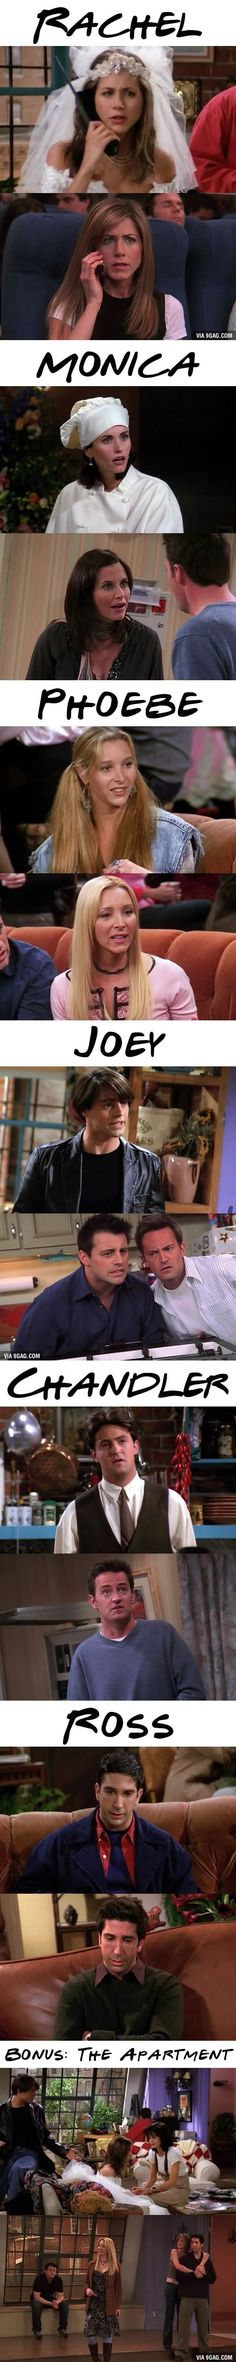 "The Cast Of ""Friends"" On The First Episode Vs. The Last Episode Friends is the Best Show Ever. Friends made us laugh, it made us cry. It thought all of us so much about friendship and friends. Friends Tv Show, Friends 1994, The Cast Of Friends, Serie Friends, Friends Moments, I Love My Friends, Friends Forever, Funny Friends, Friends Season 10"